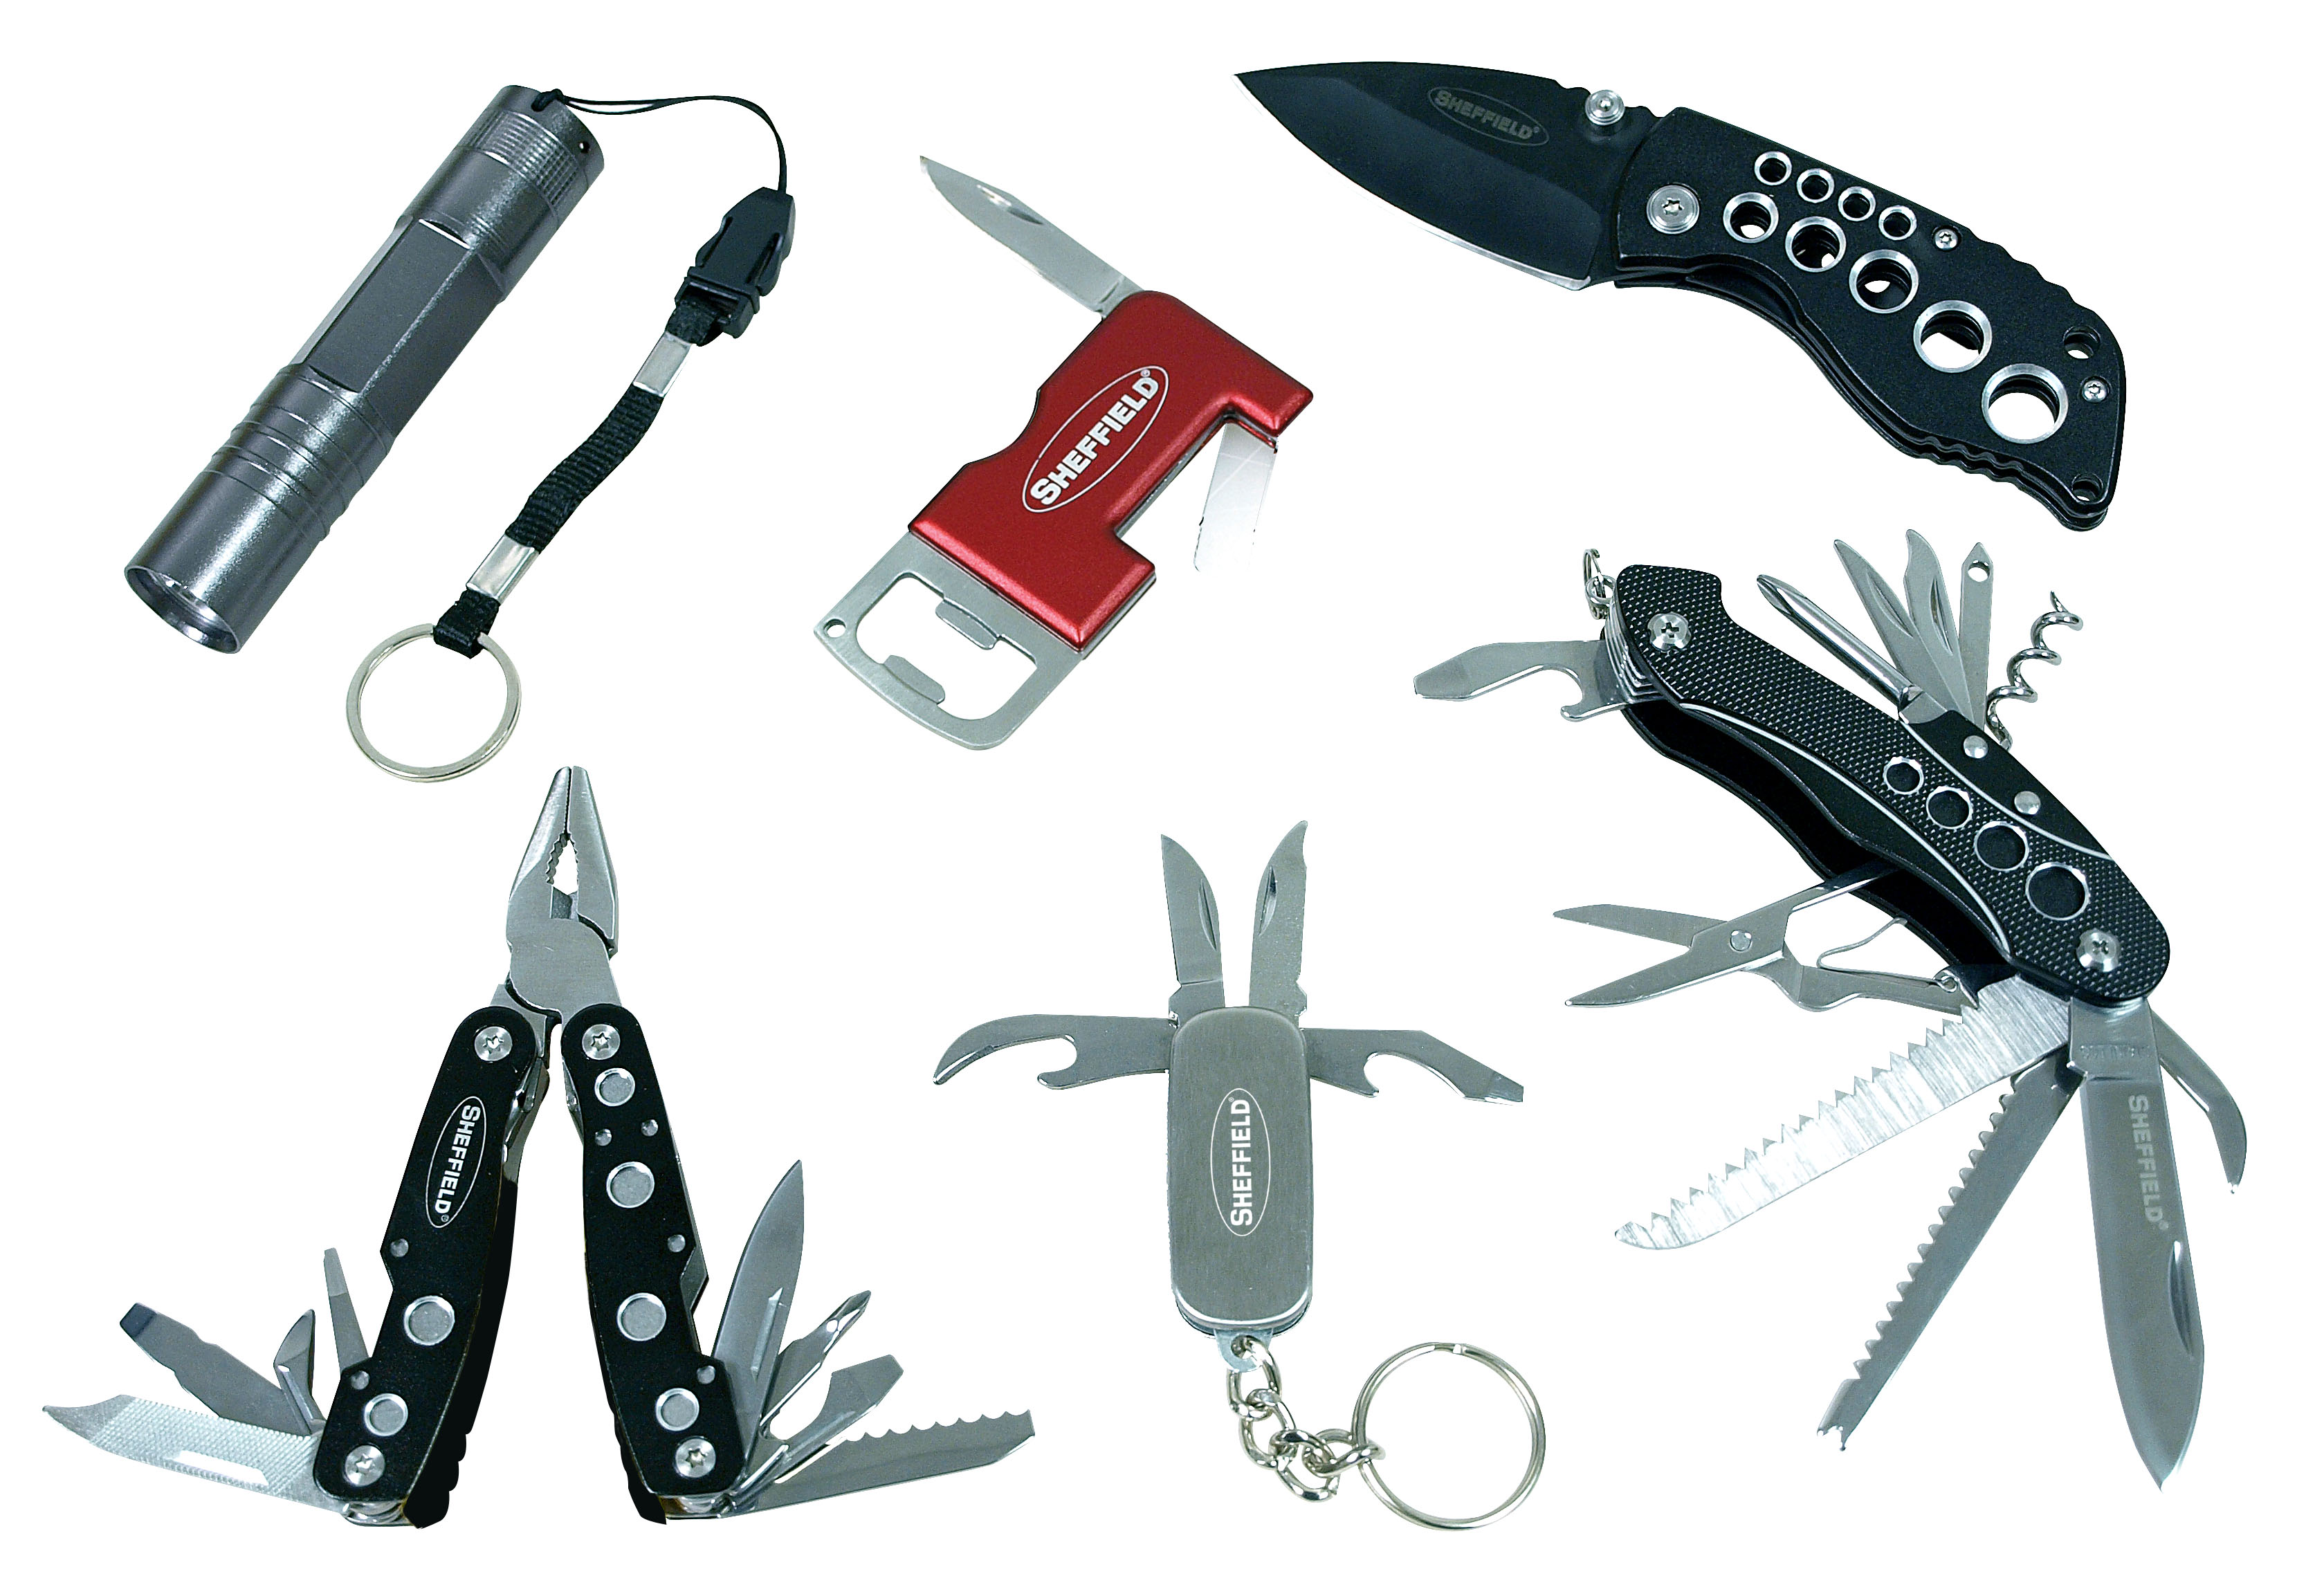 12312 Great Neck Tools Multi Function Tool Use As Knife/ Plier/